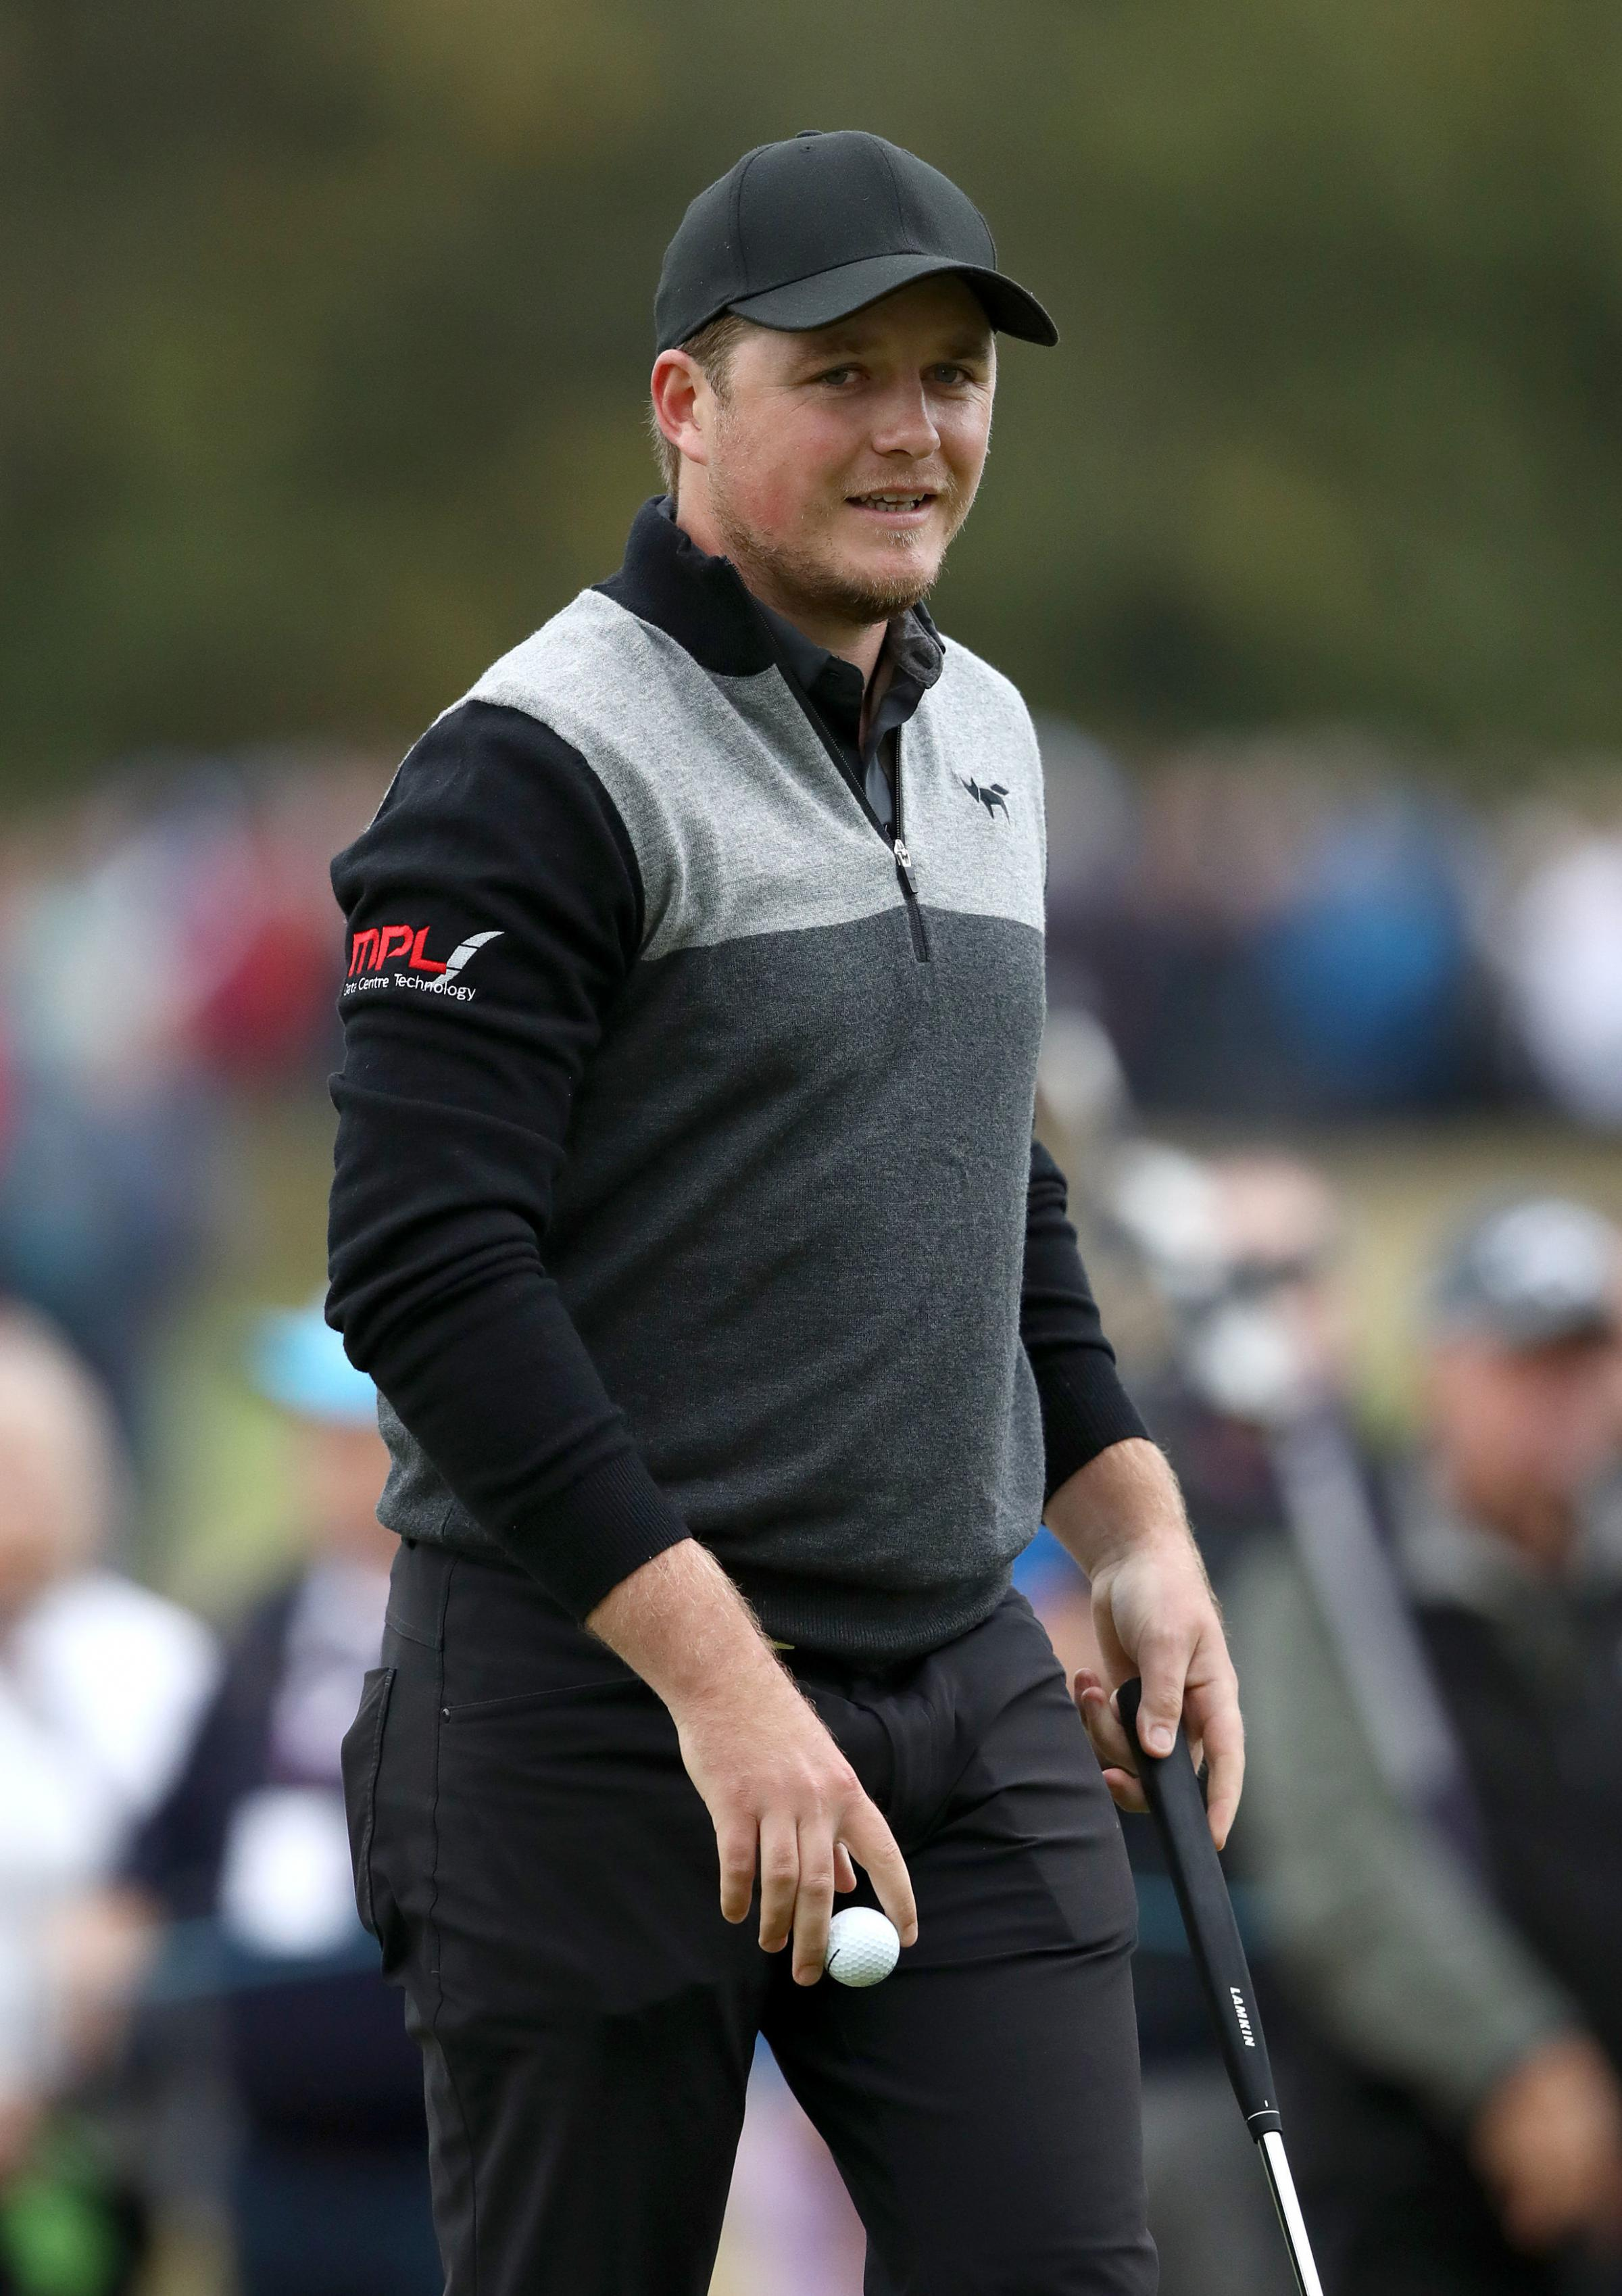 Eddie Pepperell in action at Walton Heath today. Picture: John Walton/PA Wire